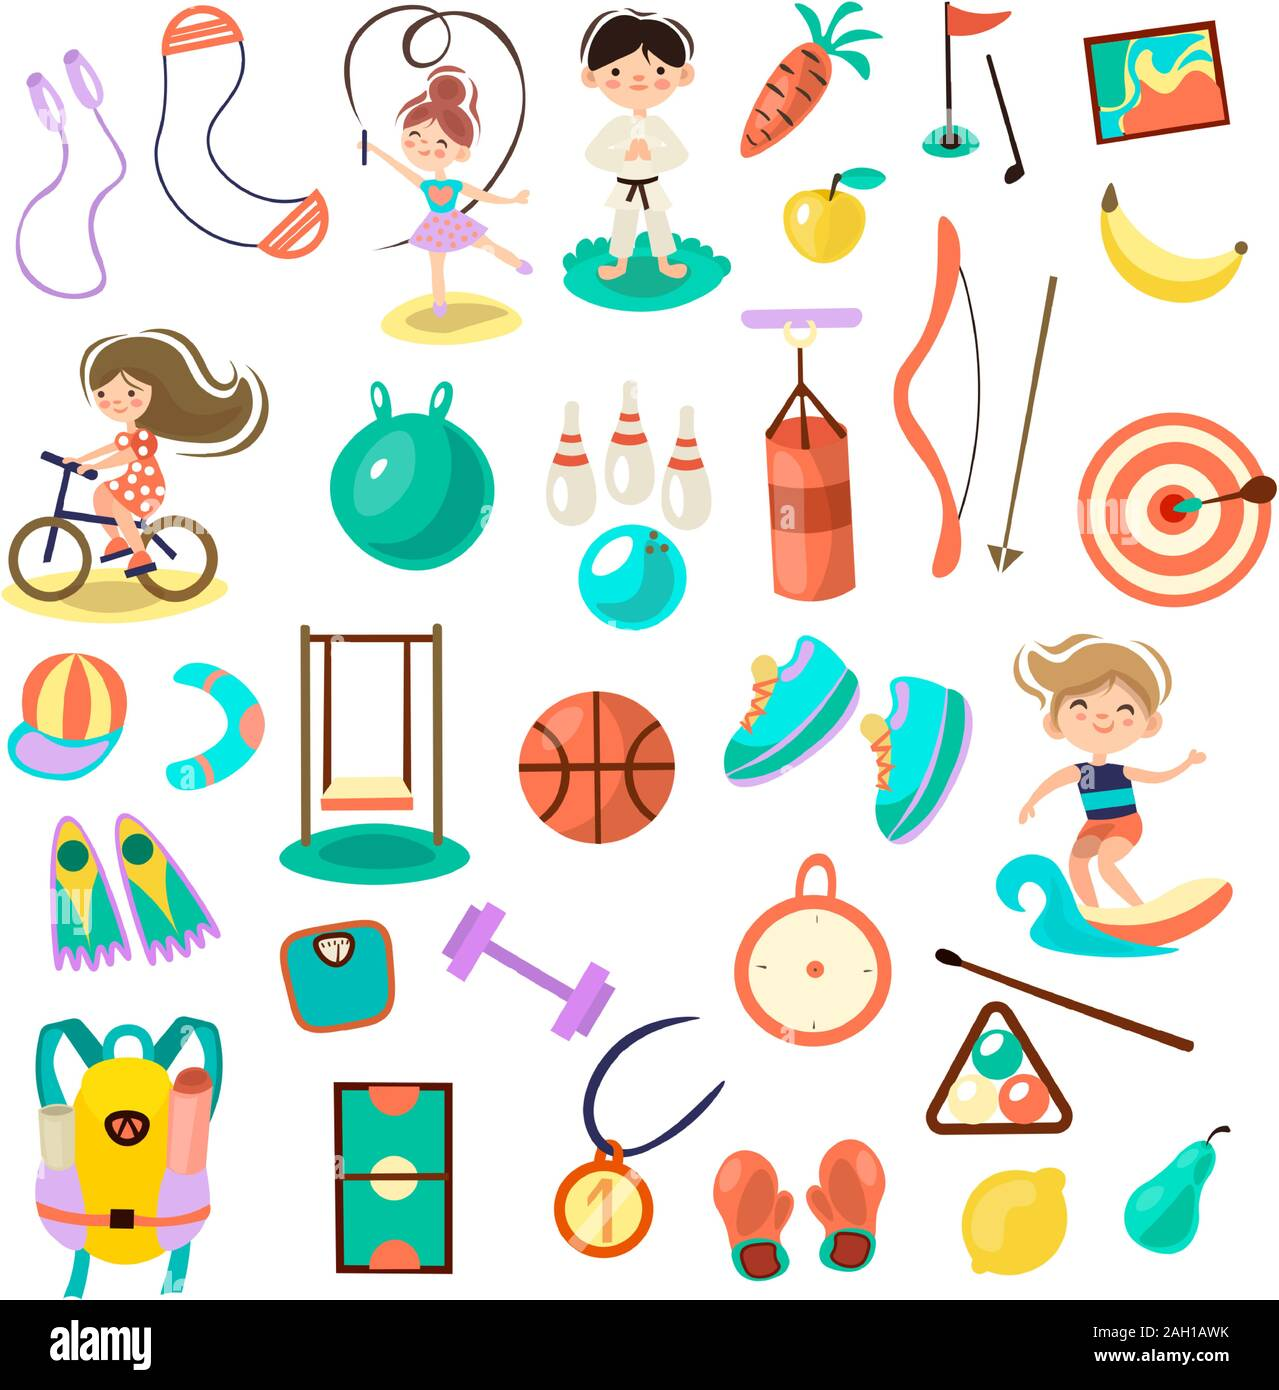 Kids Doing Sport Games Vector Cartoon Illustration Playing Jumping Swimming Boys And Girls With Sports Equipment Balls Sport Games And Summer Stock Vector Image Art Alamy